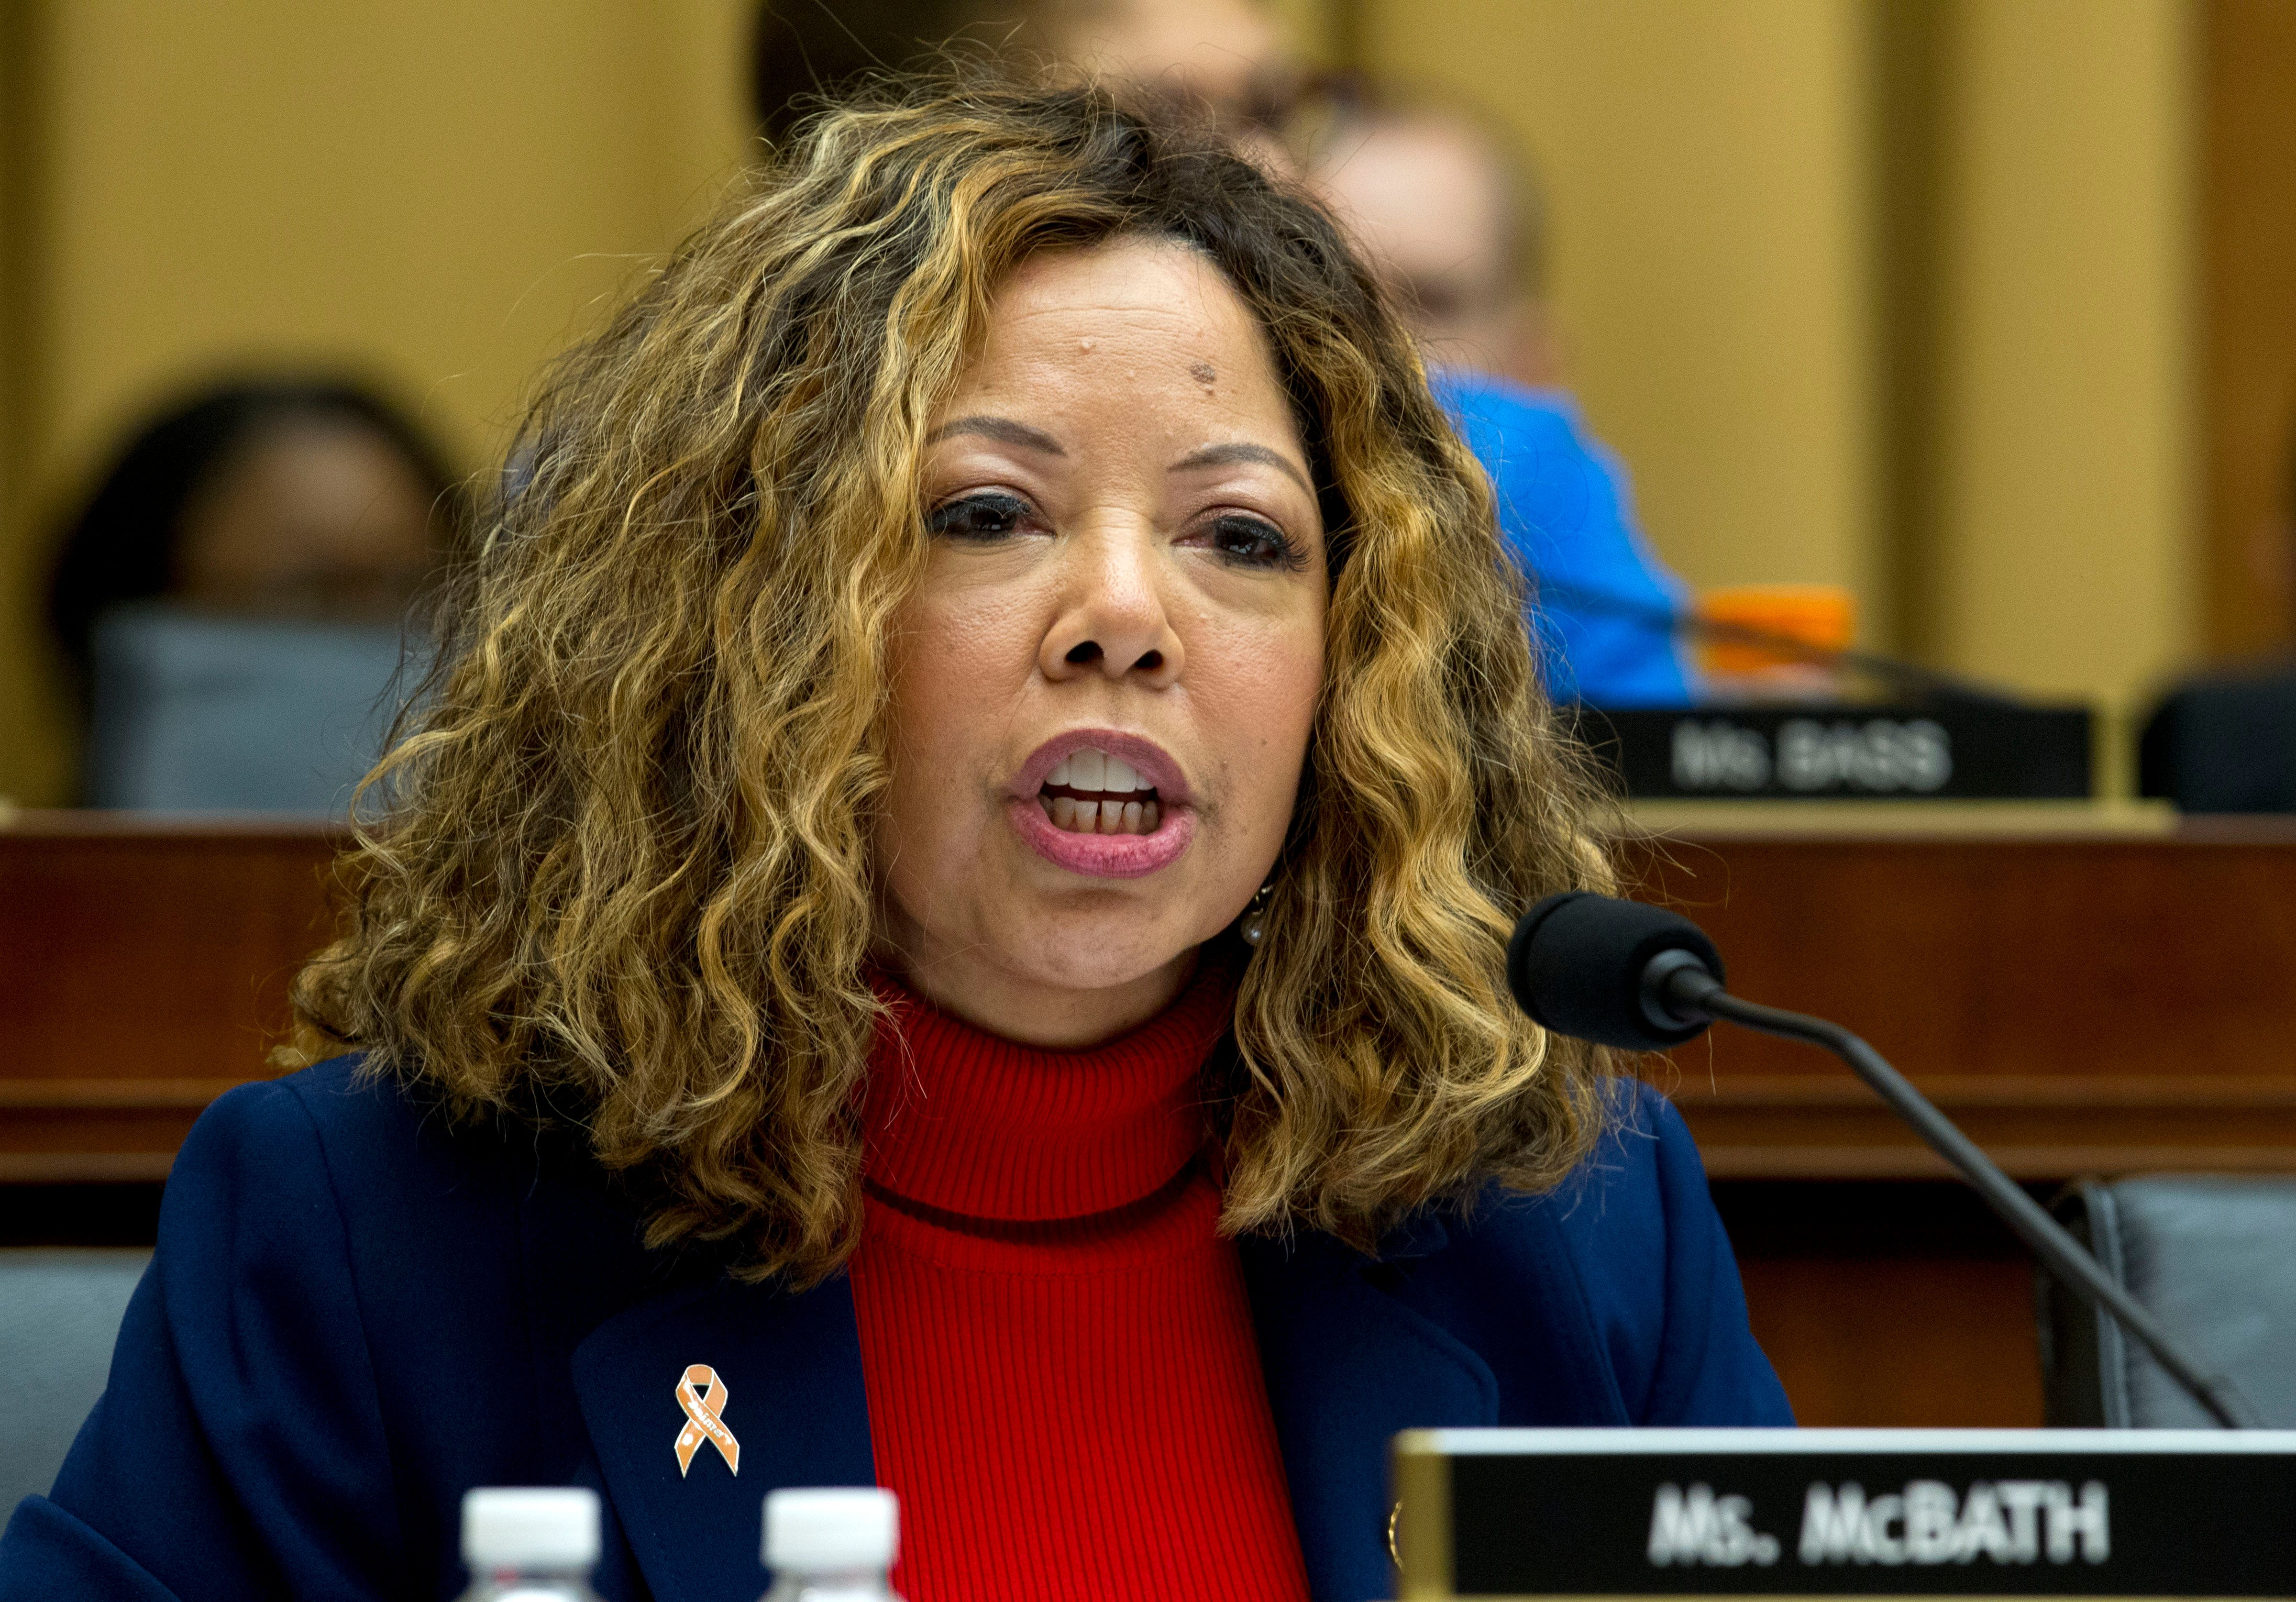 Rep. Lucy McBath D-Ga., speaks during the House Judiciary Committee hearing on gun violence, at Capitol Hill in Washington, Wednesday, Feb. 6, 2019. (AP Photo/Jose Luis Magana)